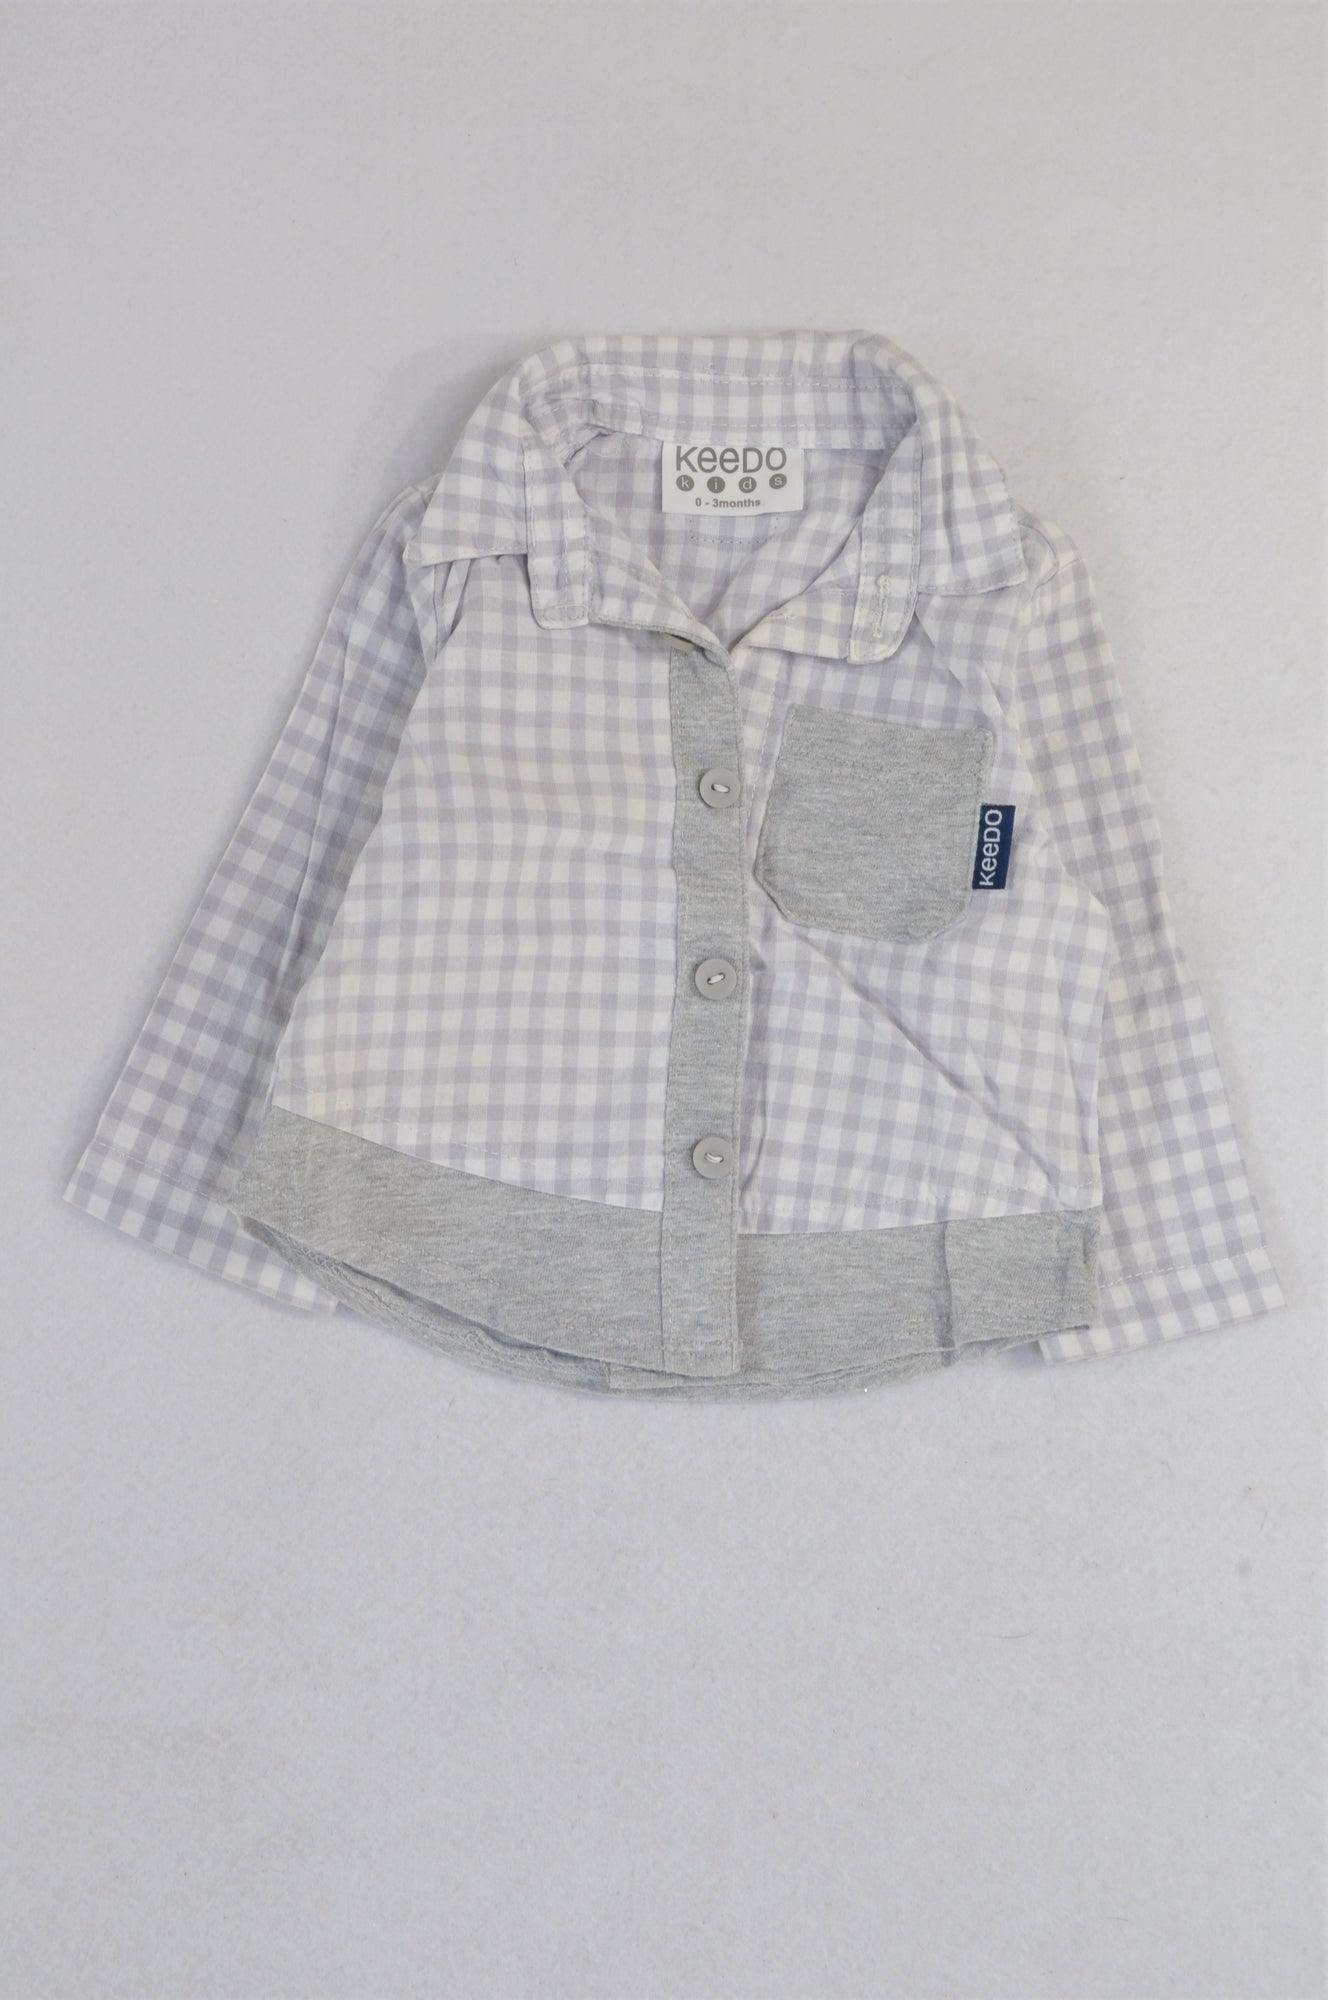 Keedo Lilac Check Grey Detail Lightweight Shirt Boys 0-3 months